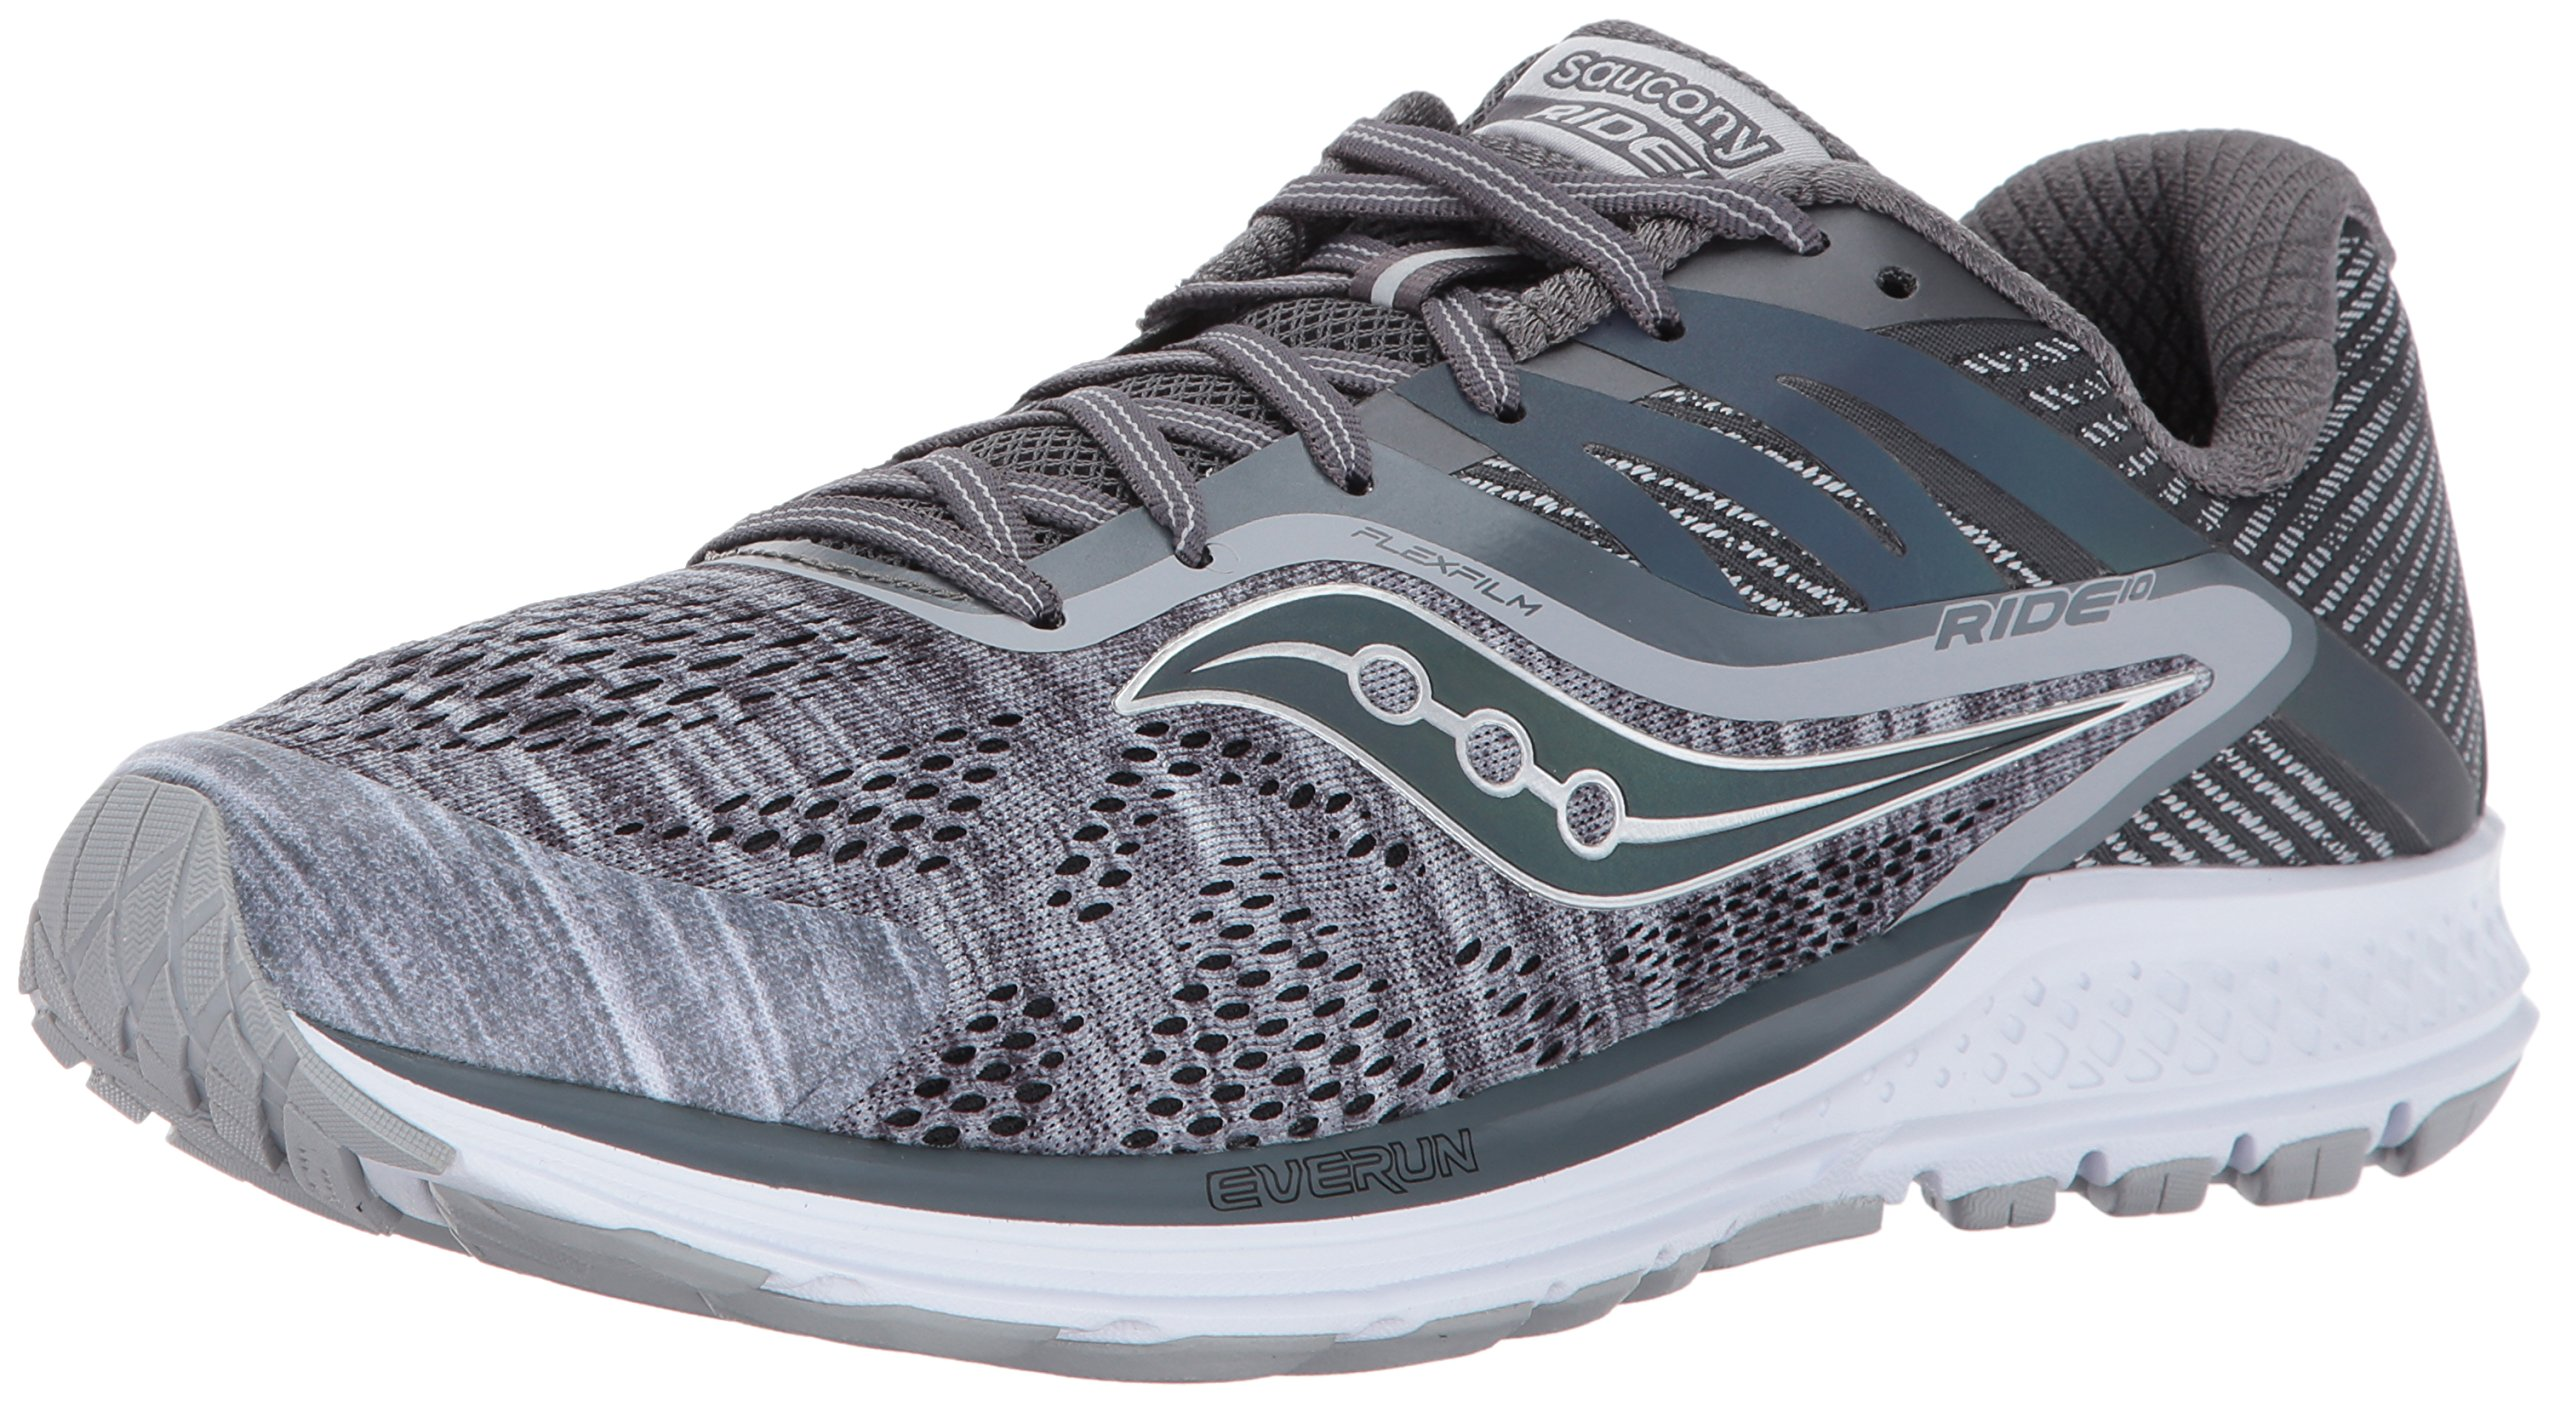 Saucony Men's Ride 10 Running Shoe, Grey, 13 M US by Saucony